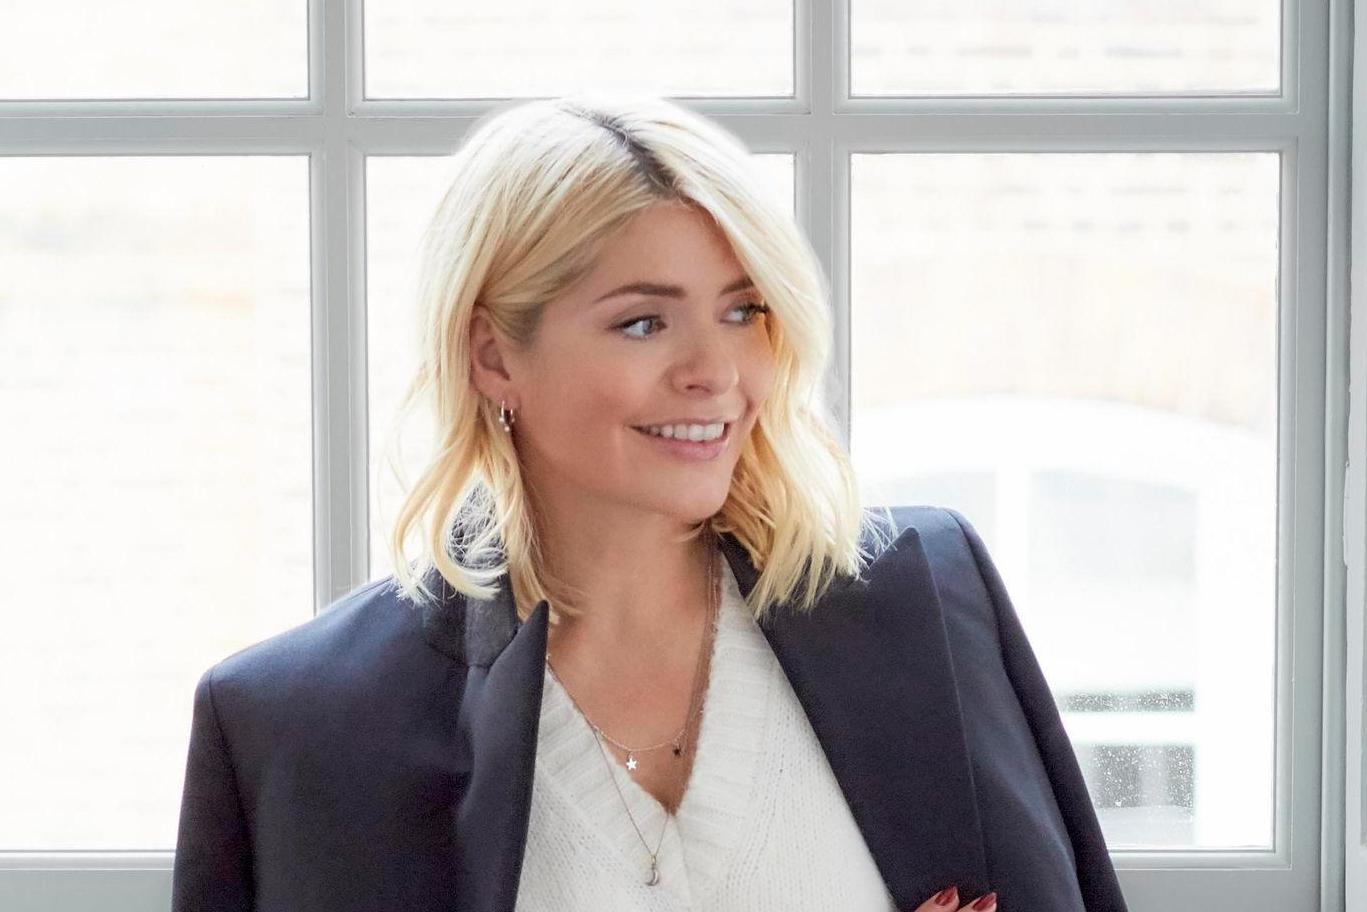 Holly Willoughby reveals she loves her curvy figure and is 'much happier' with her face now she's older